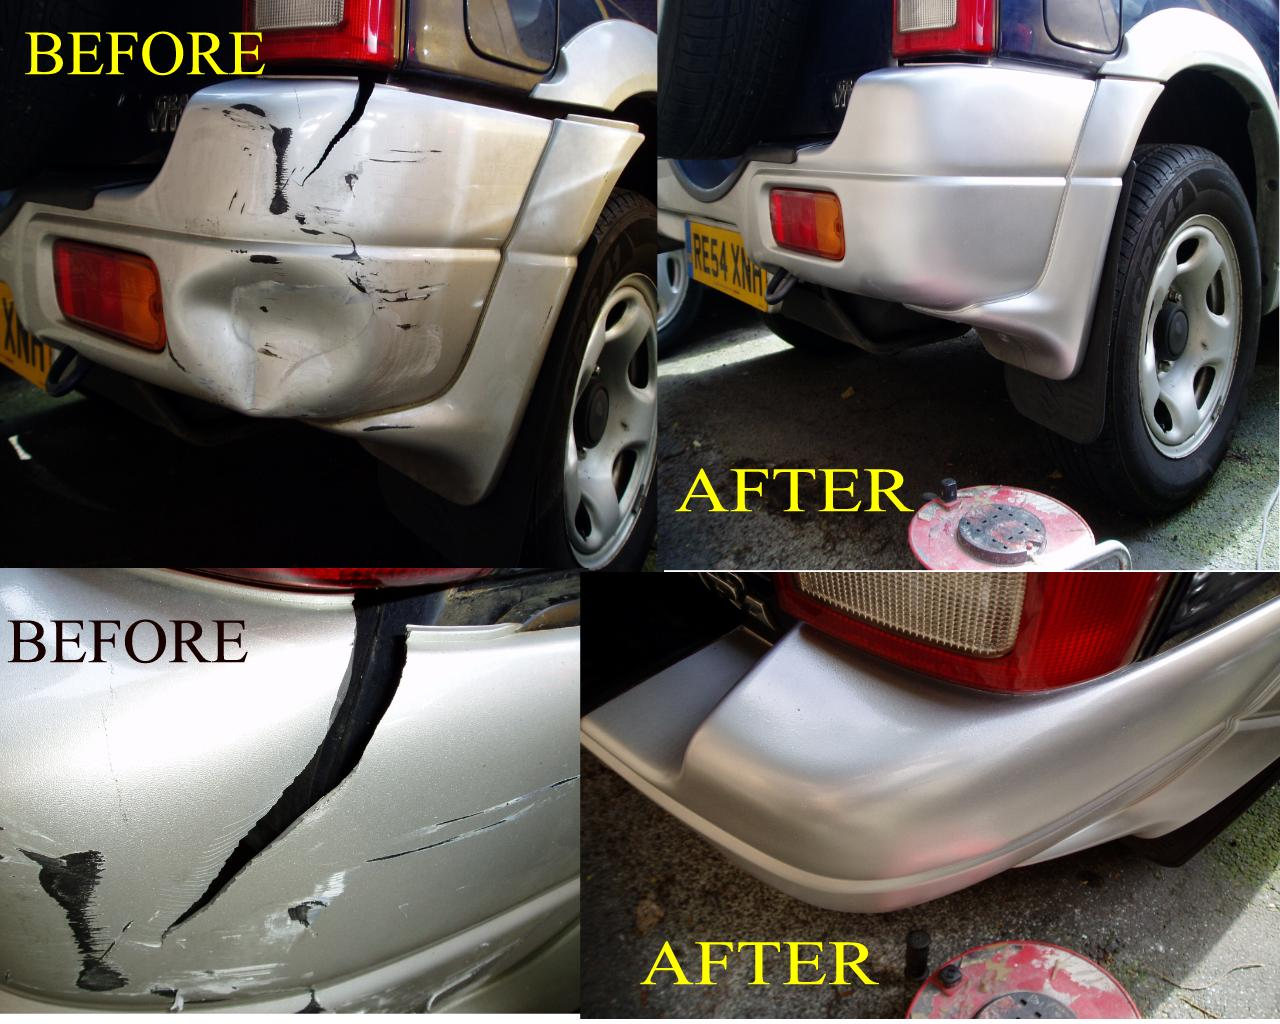 CRACKED SPLIT BROKEN BUMPER REPAIRS